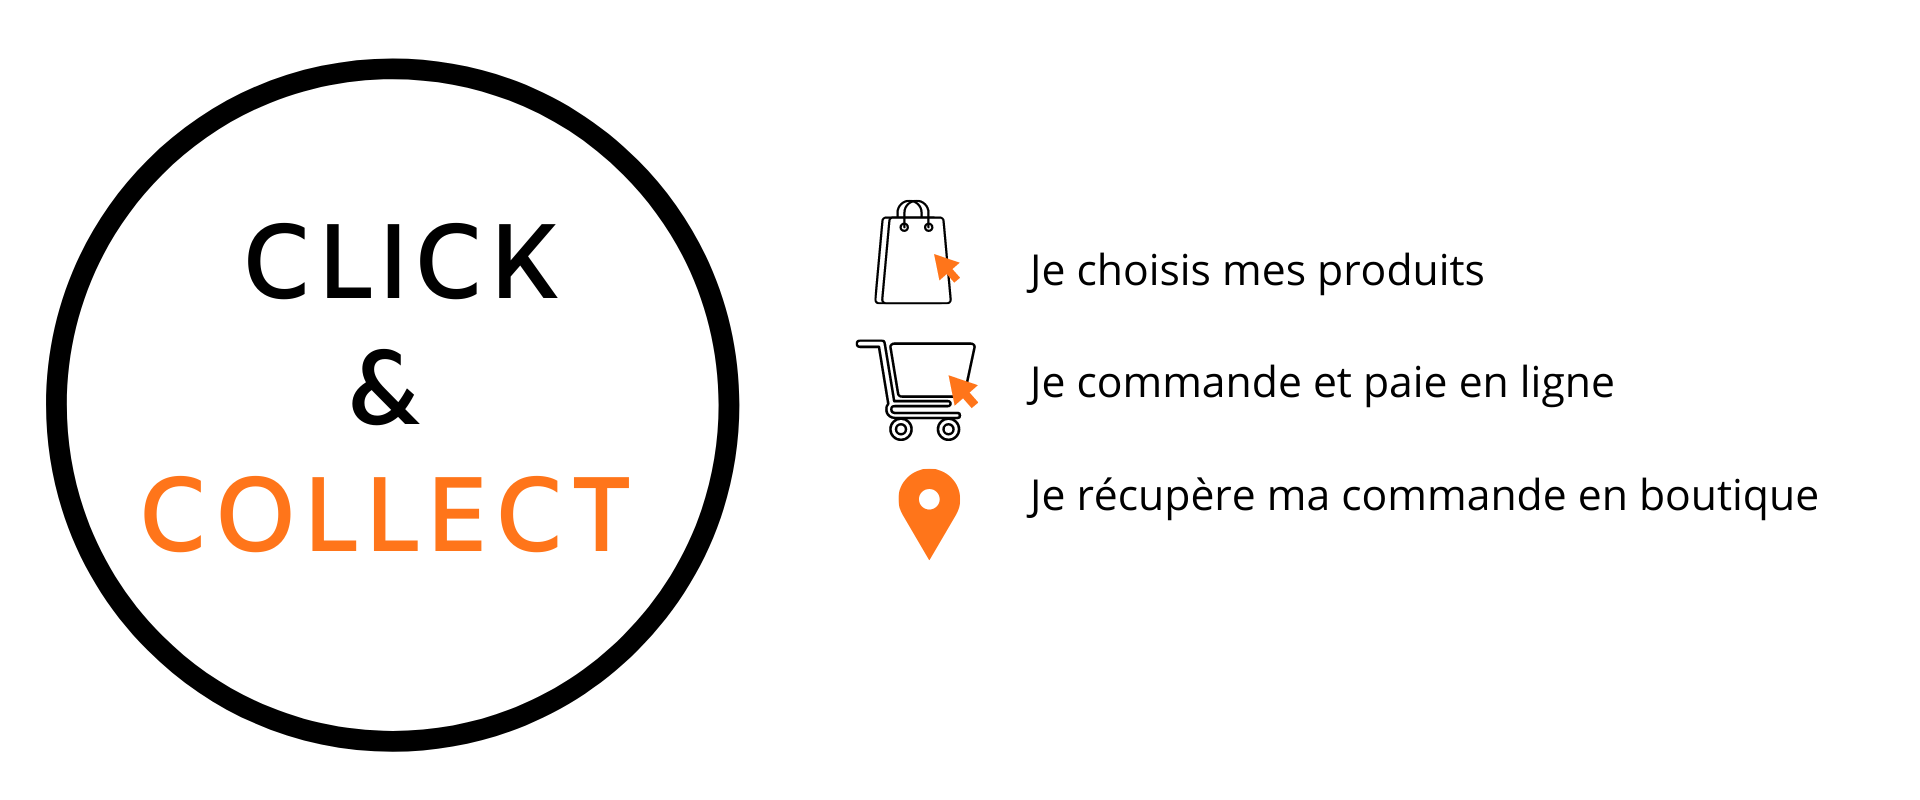 Click & collect tradi-pates description